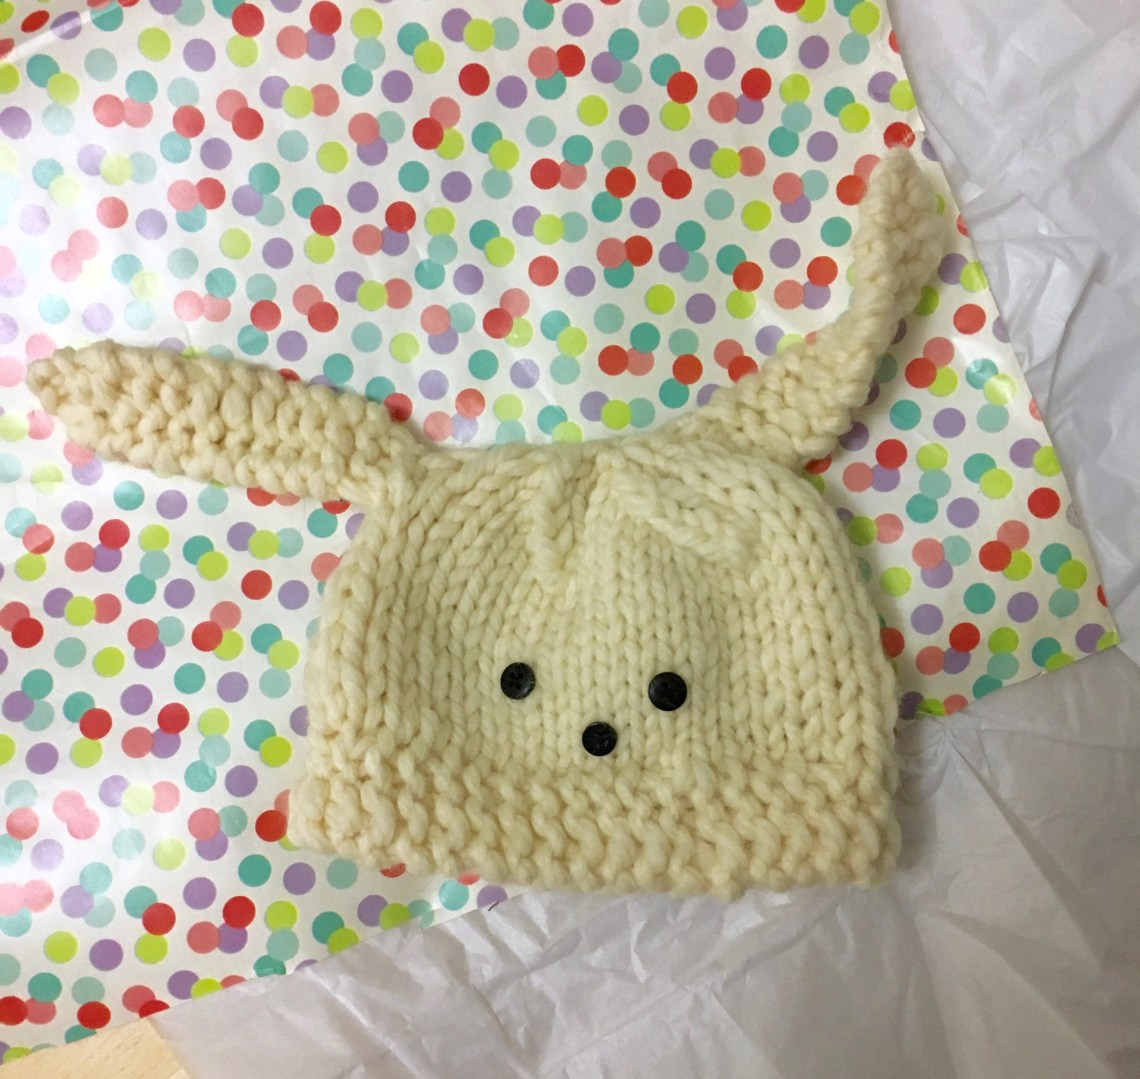 Add bunny ears to a baby hat for Last minute knitted gift ideas